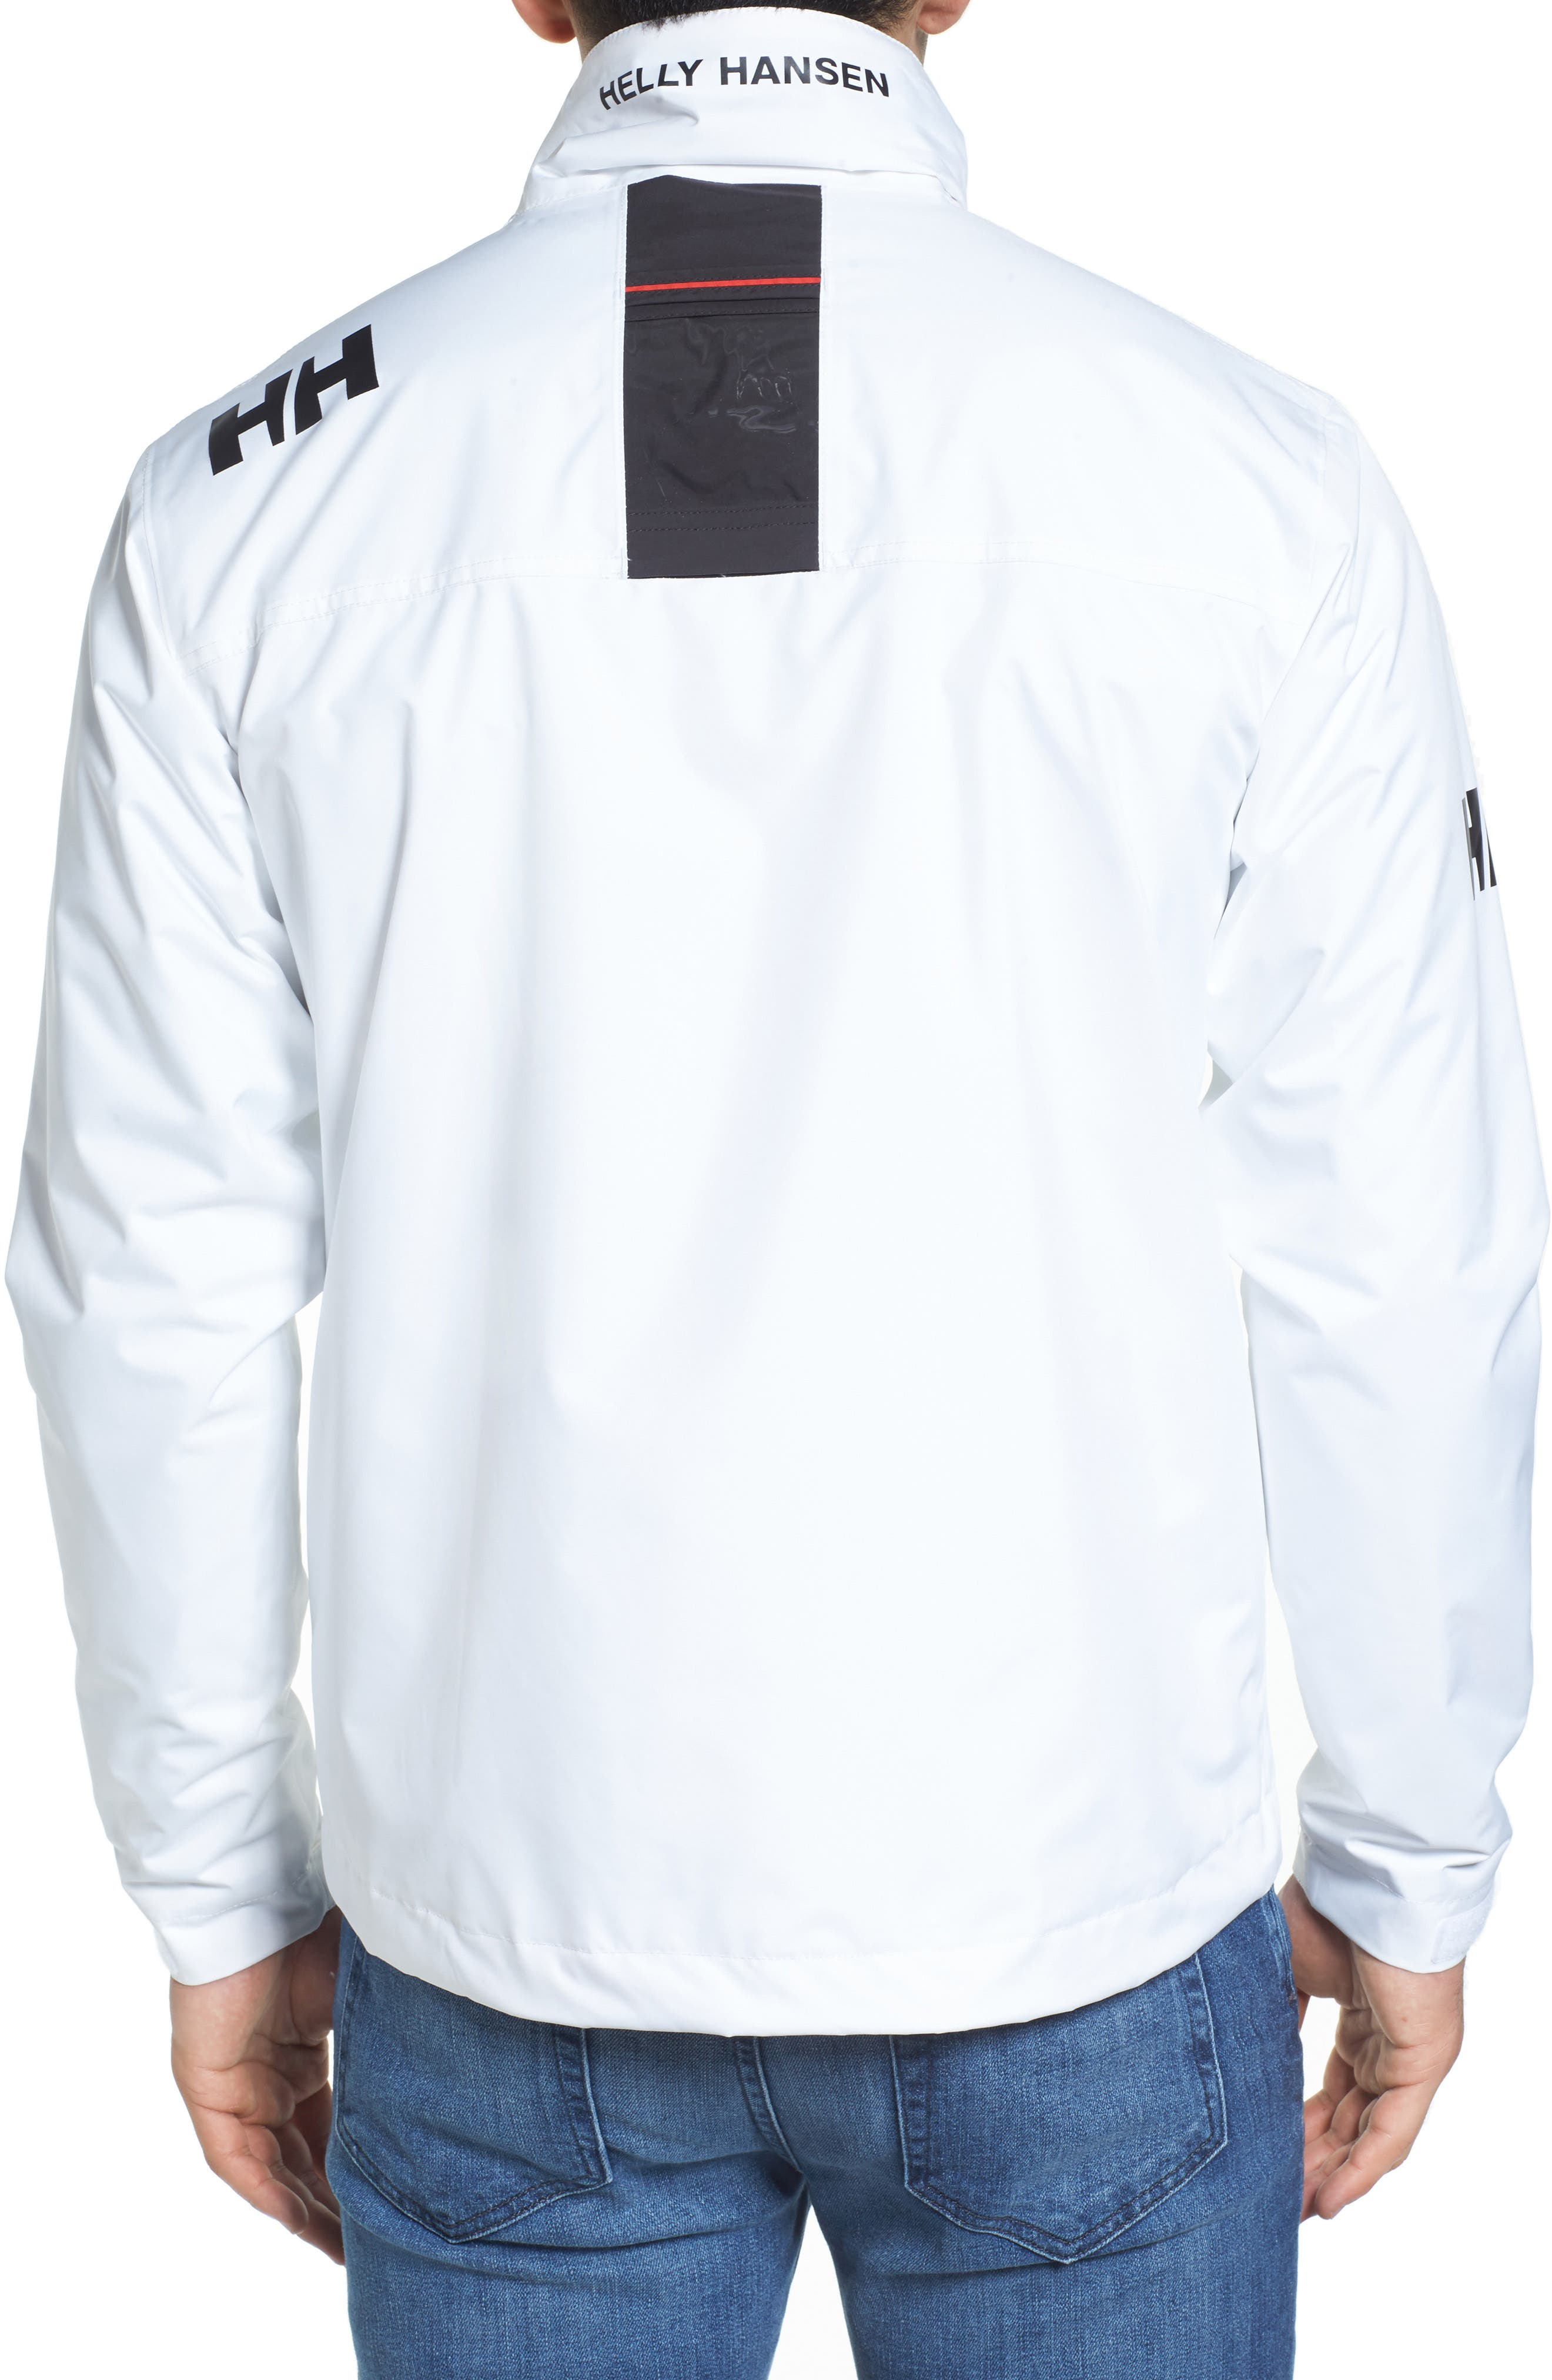 'Crew' Waterproof & Windproof Jacket,                             Alternate thumbnail 2, color,                             BRIGHT WHITE